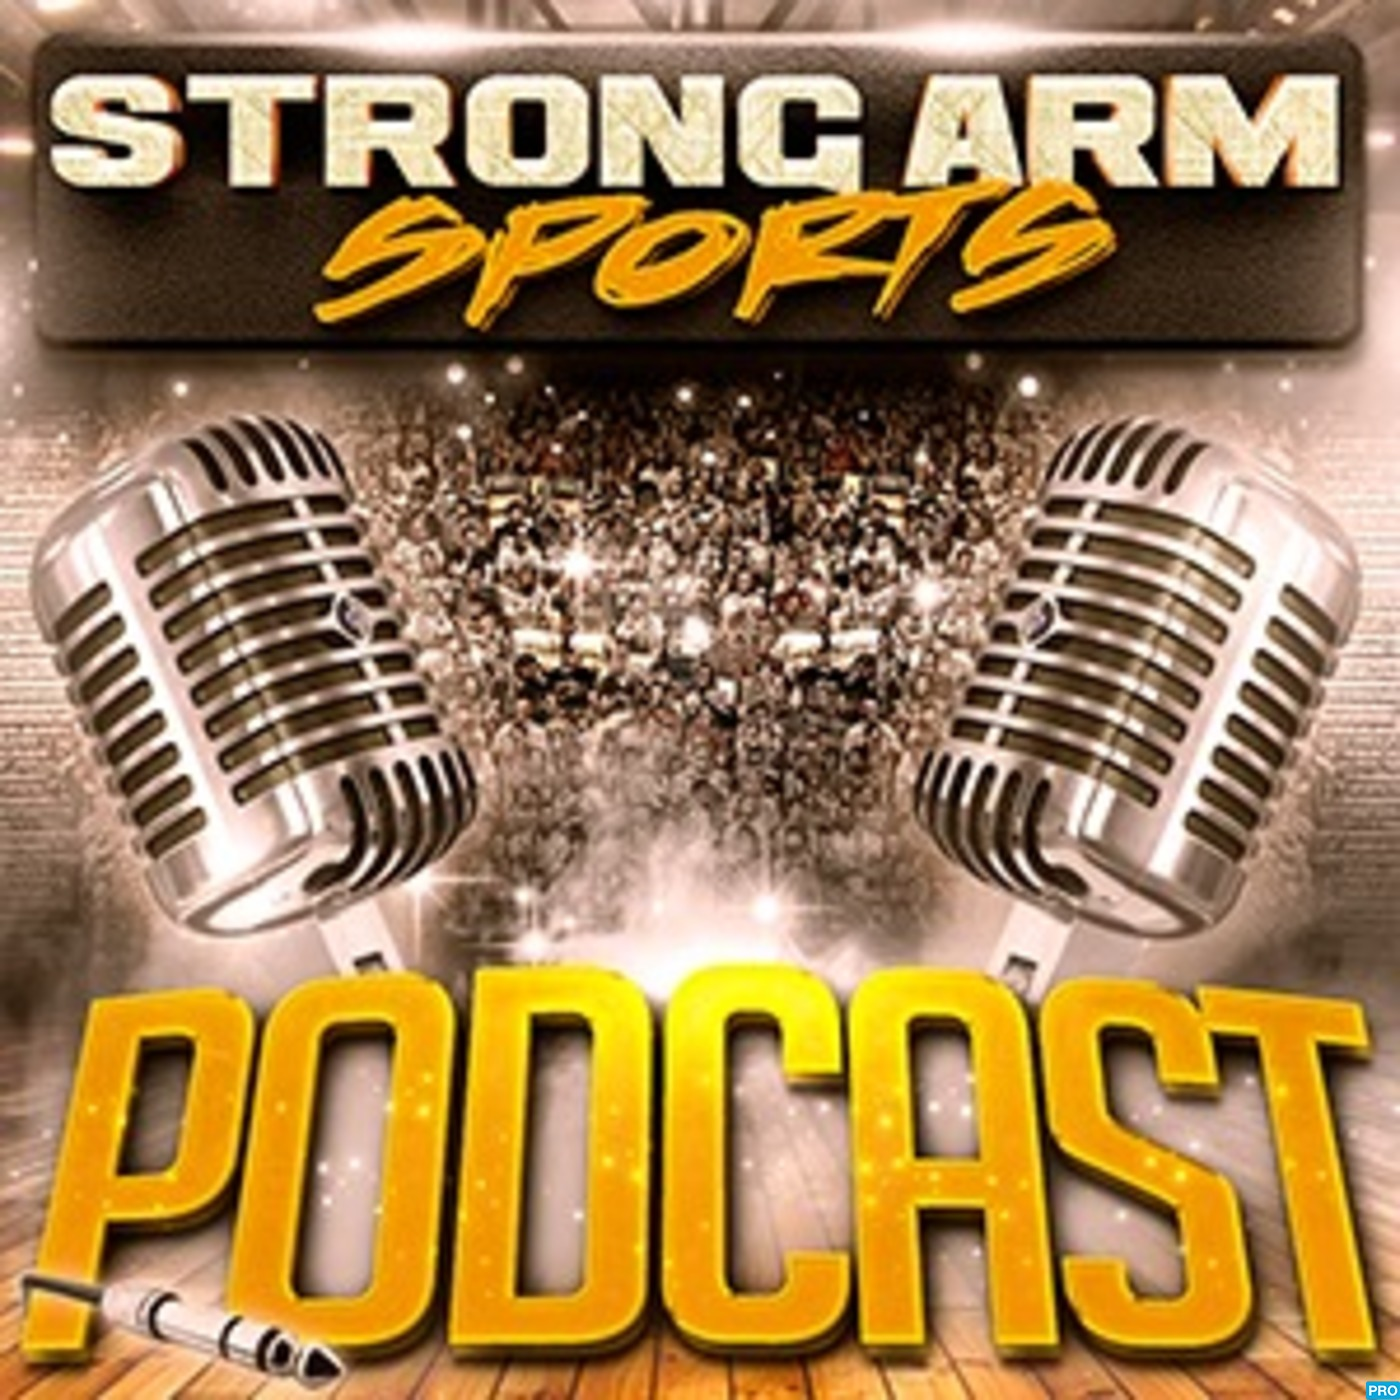 StrongArmSports' Podcast